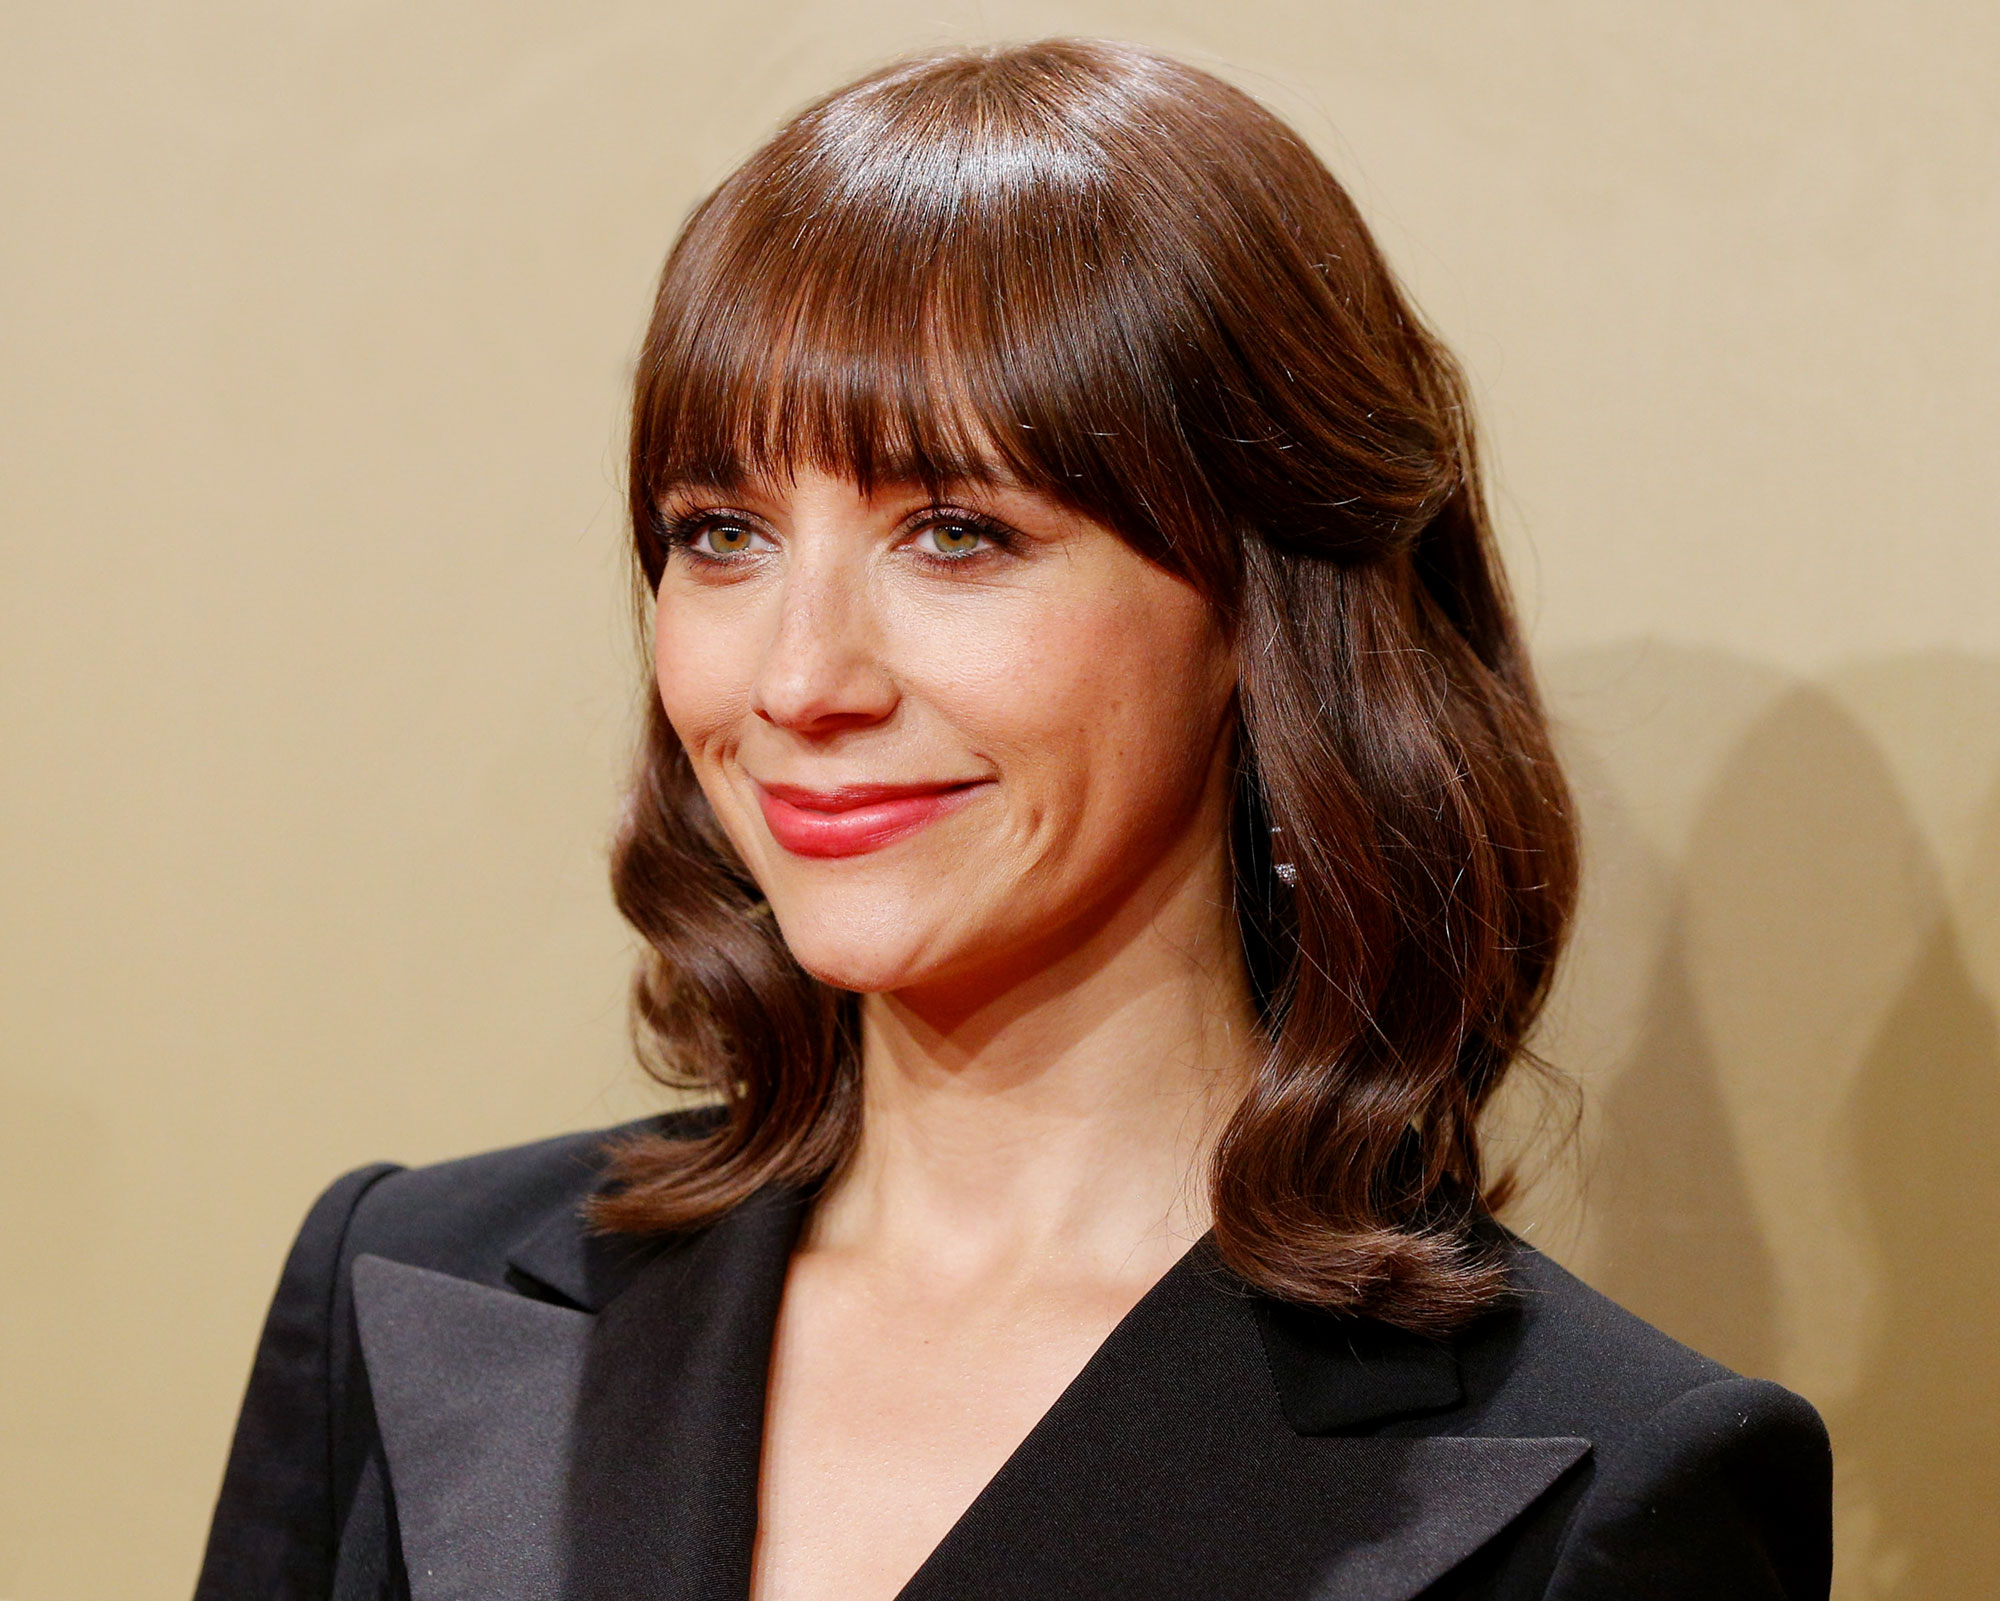 rashida-jones-reveals-she-nearly-quit-working-in-the-entertainment-business-heres-why